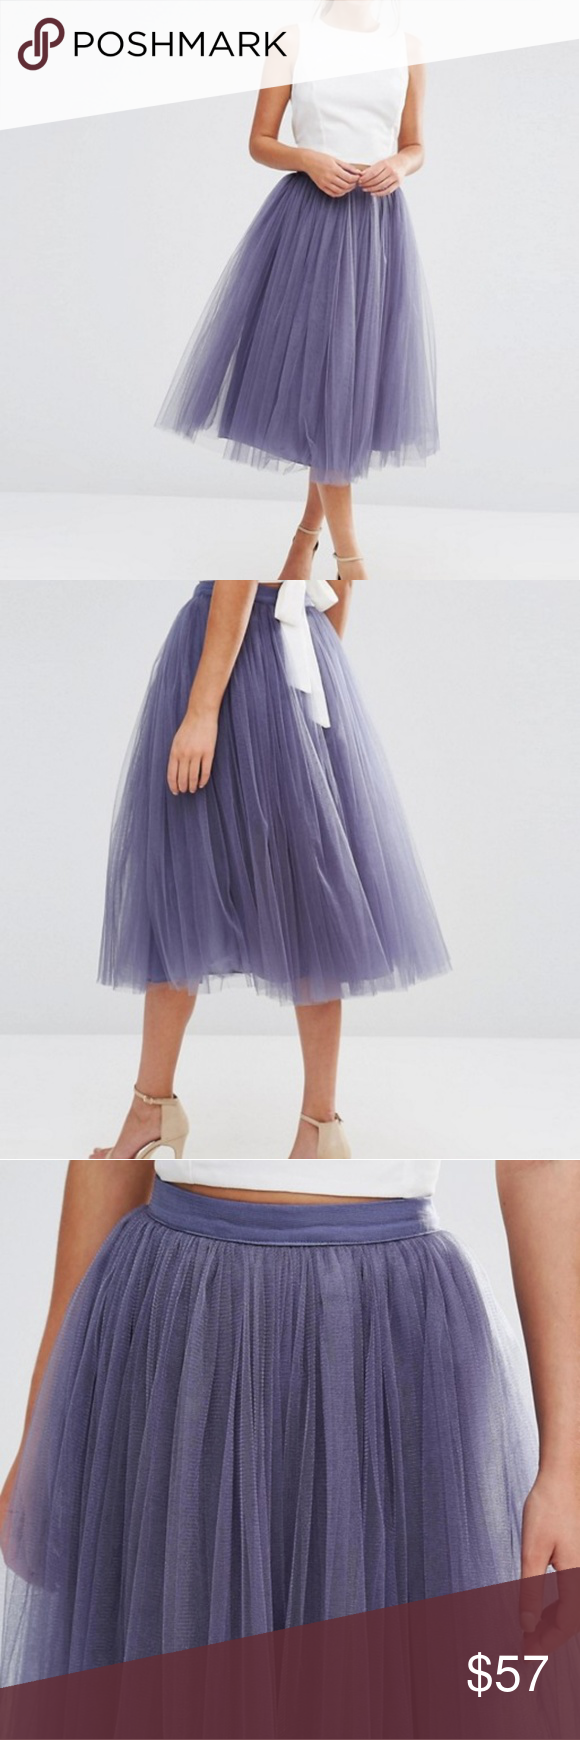 e3b0f68a39 Asos Little Mistress Tulle Midi Skirt Beautiful Asos tulle skirt!! Layers  of Lavender colored tulle make this skirt look like it belongs in a  fairytale. NWT ...